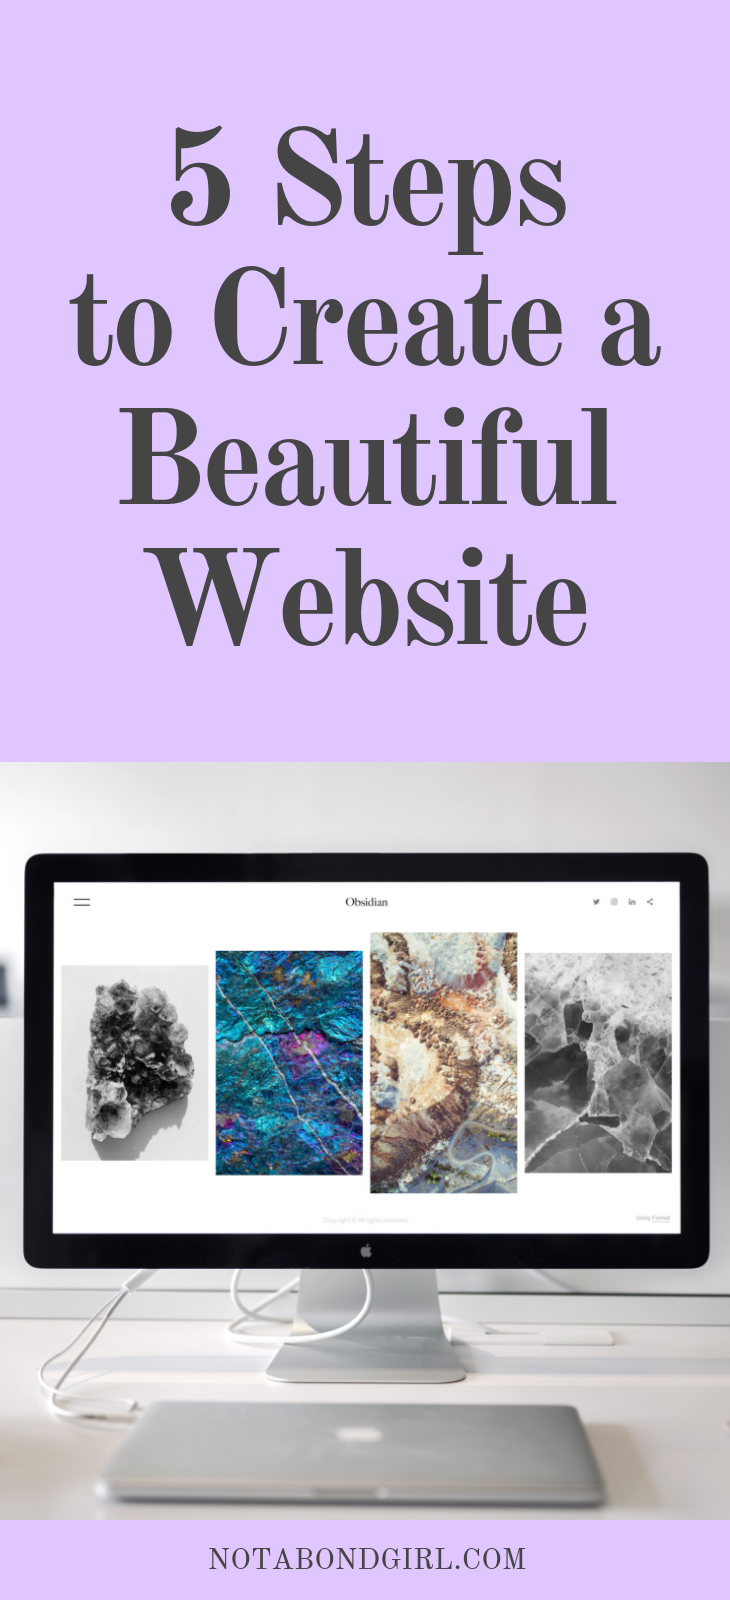 5 Steps to Create a Beautiful Website; create wix website, set up website wix, set up blog, create blog on wix; blogging tips #website #webdesign #blogging #girlboss #entrepreneur #entrepreneurship #business #blogger #solopreneur #personalfinance #millennial #worklife #career